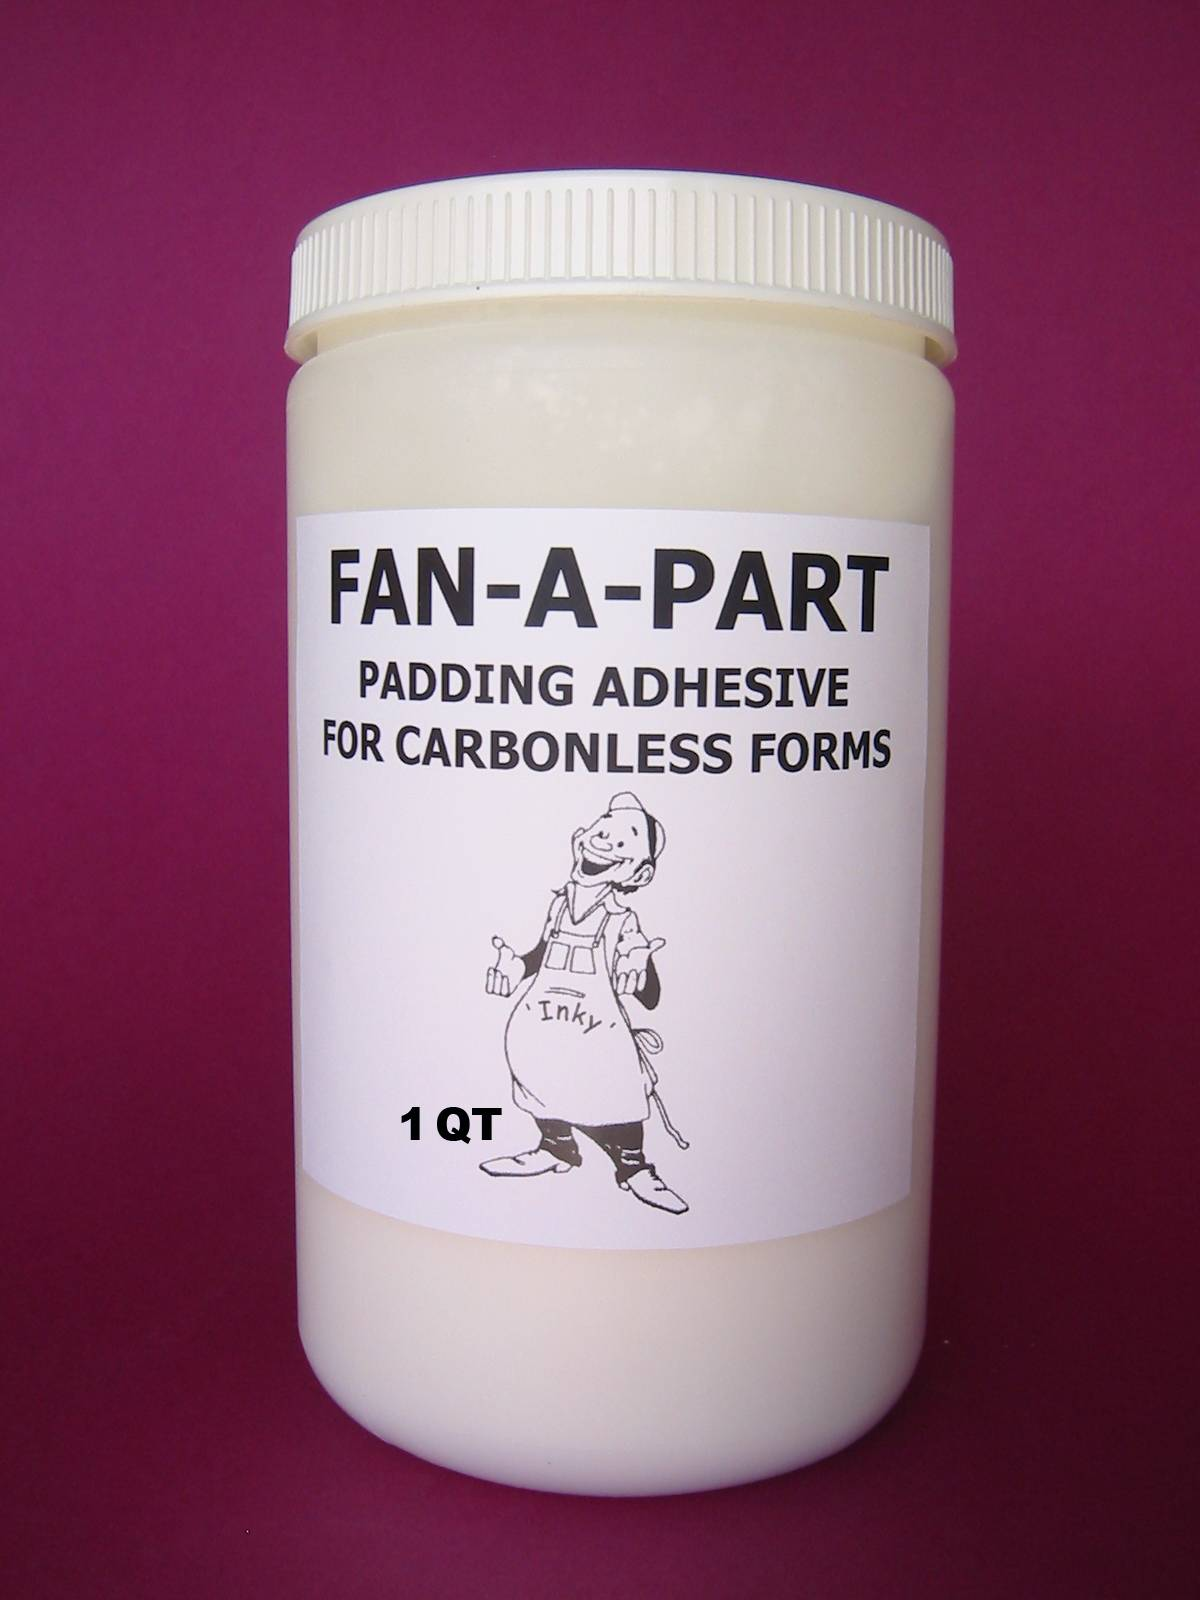 FAN-A-PART ADHESIVE - 1 Qt 3M, NCR, MEAD Papers